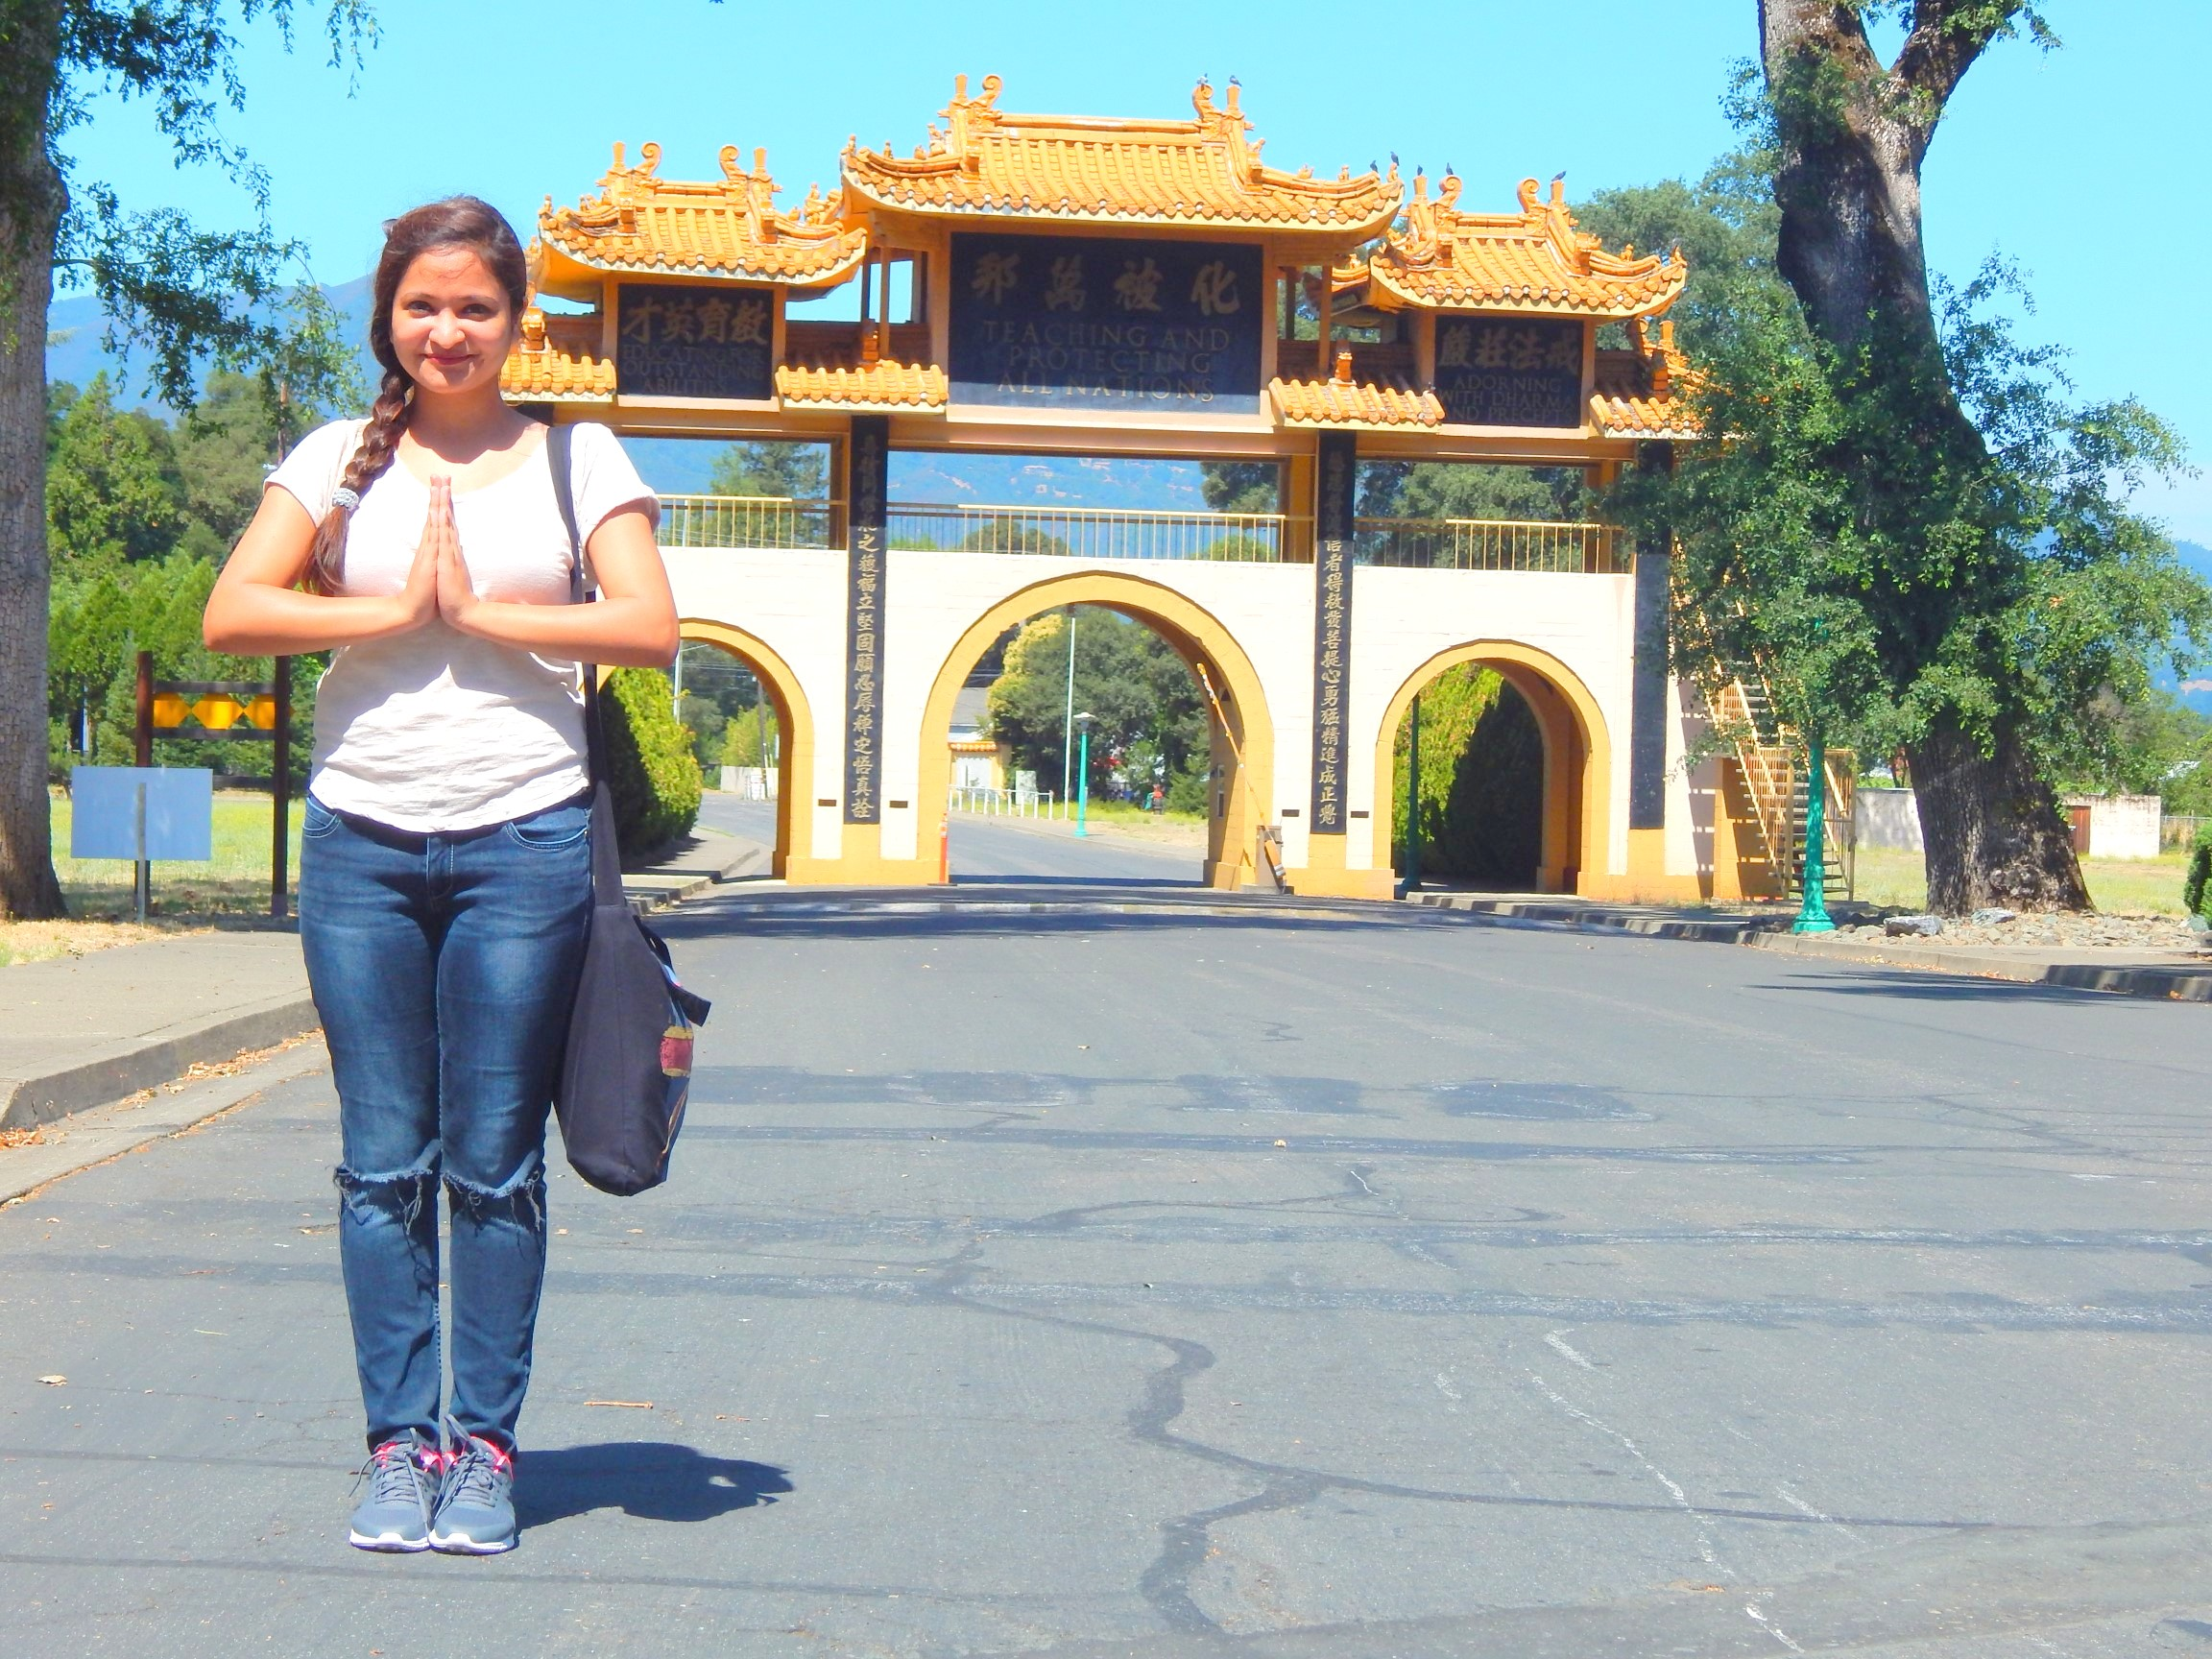 City of Ten Thousand Buddhas